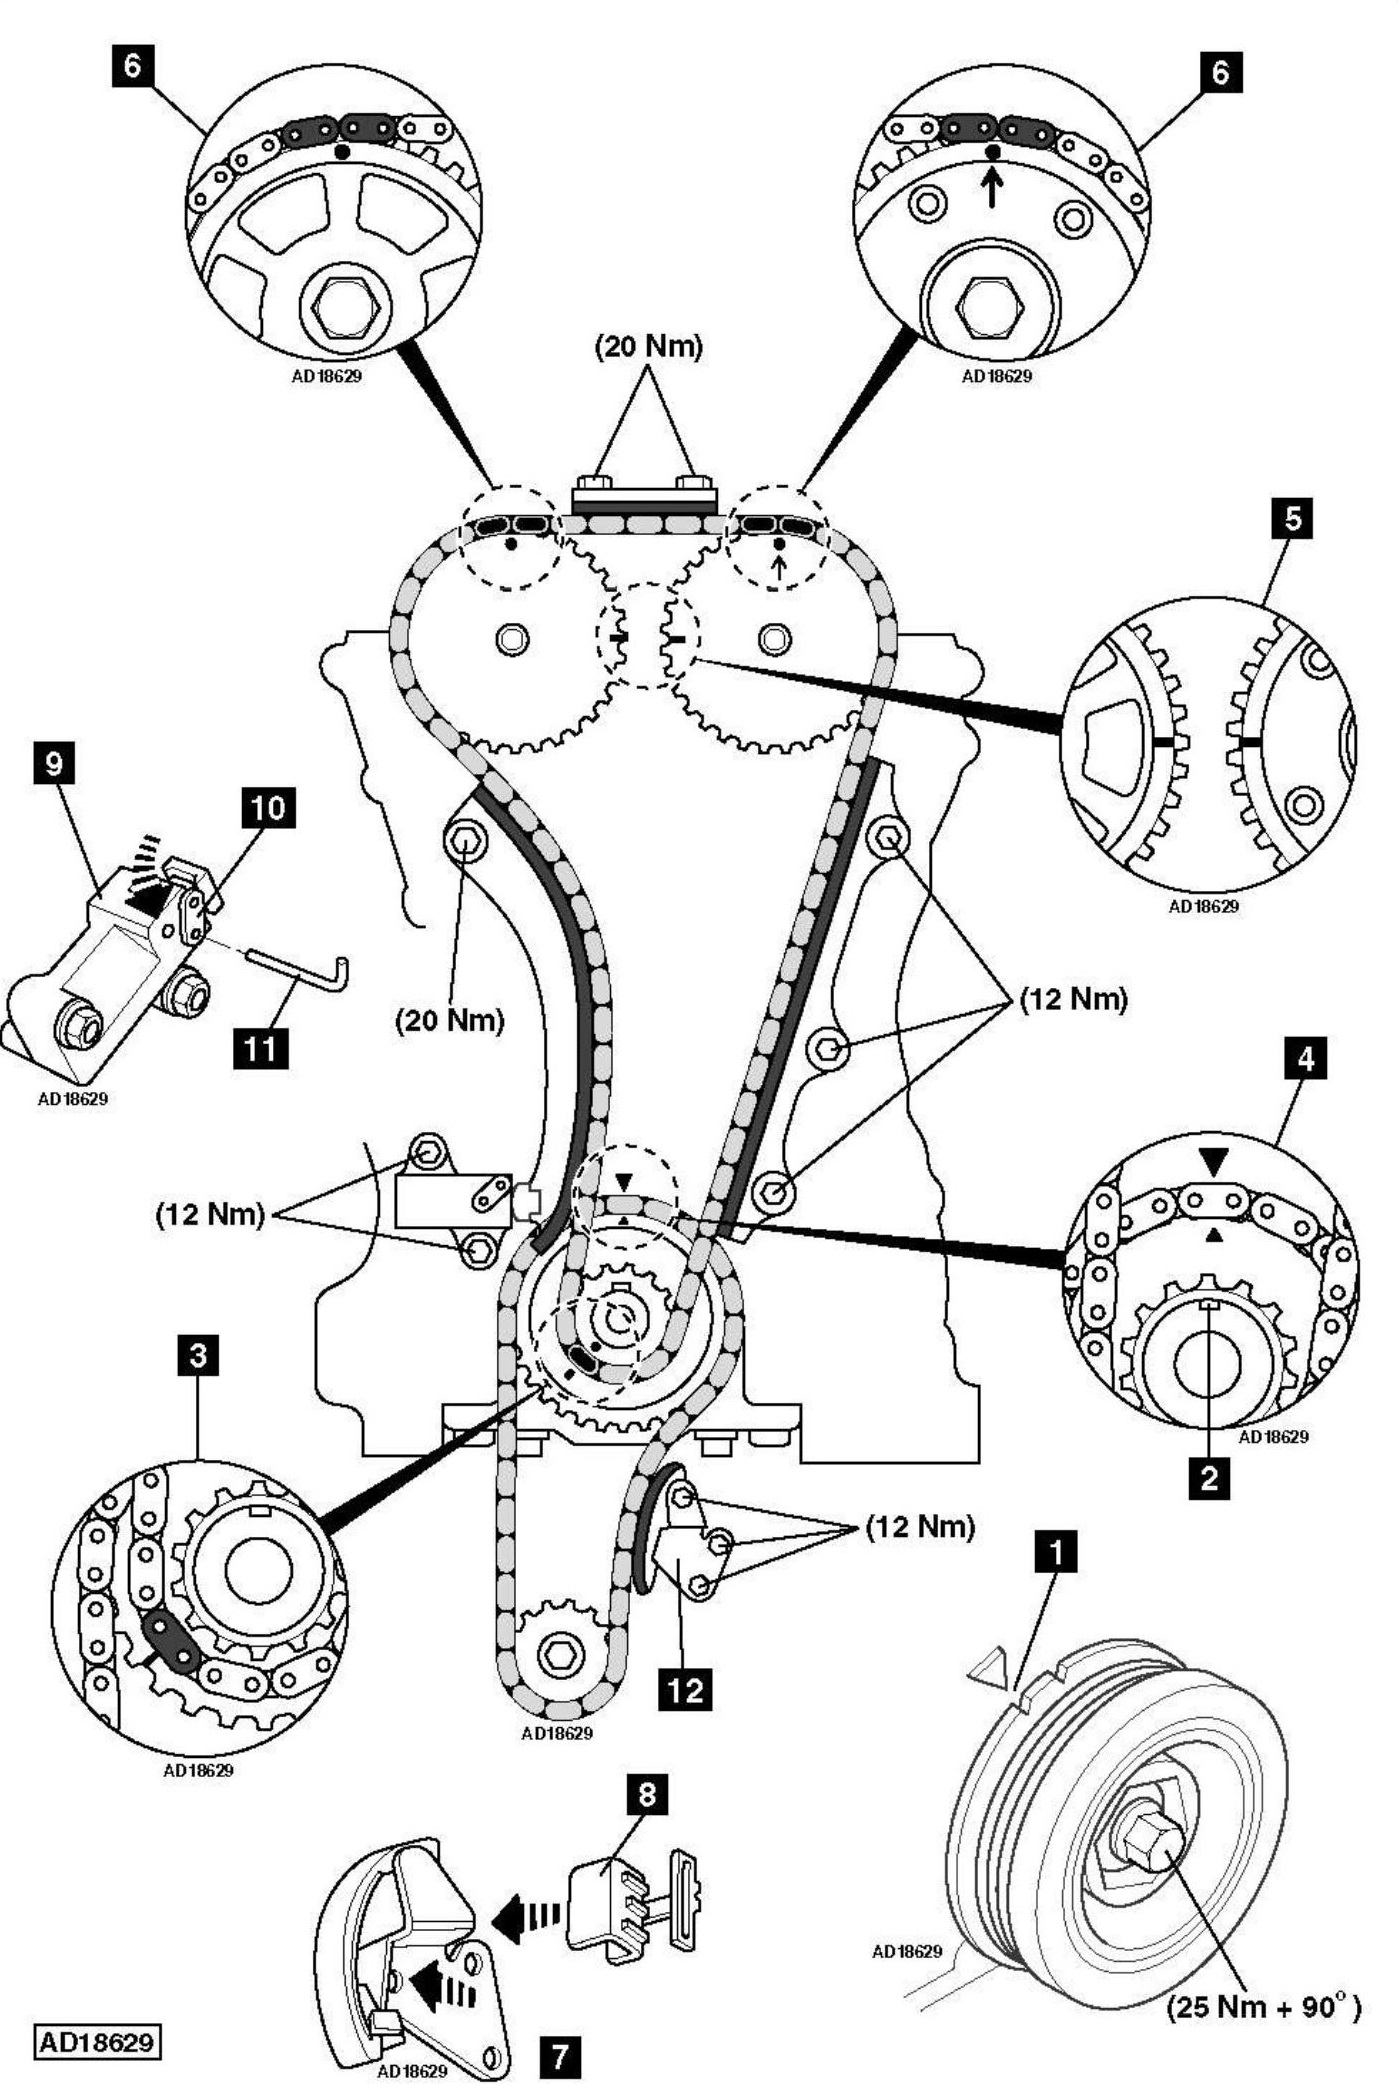 92 Geo Tracker Timing Belt Replacement likewise 1997 Suzuki Sidekick Electrical Diagram further 1995 Geo Prizm Fuse Box Diagram additionally 2002 Chevy Tracker Timing Diagram besides 94 Suzuki Sidekick Wiring Diagram. on geo prizm transmission